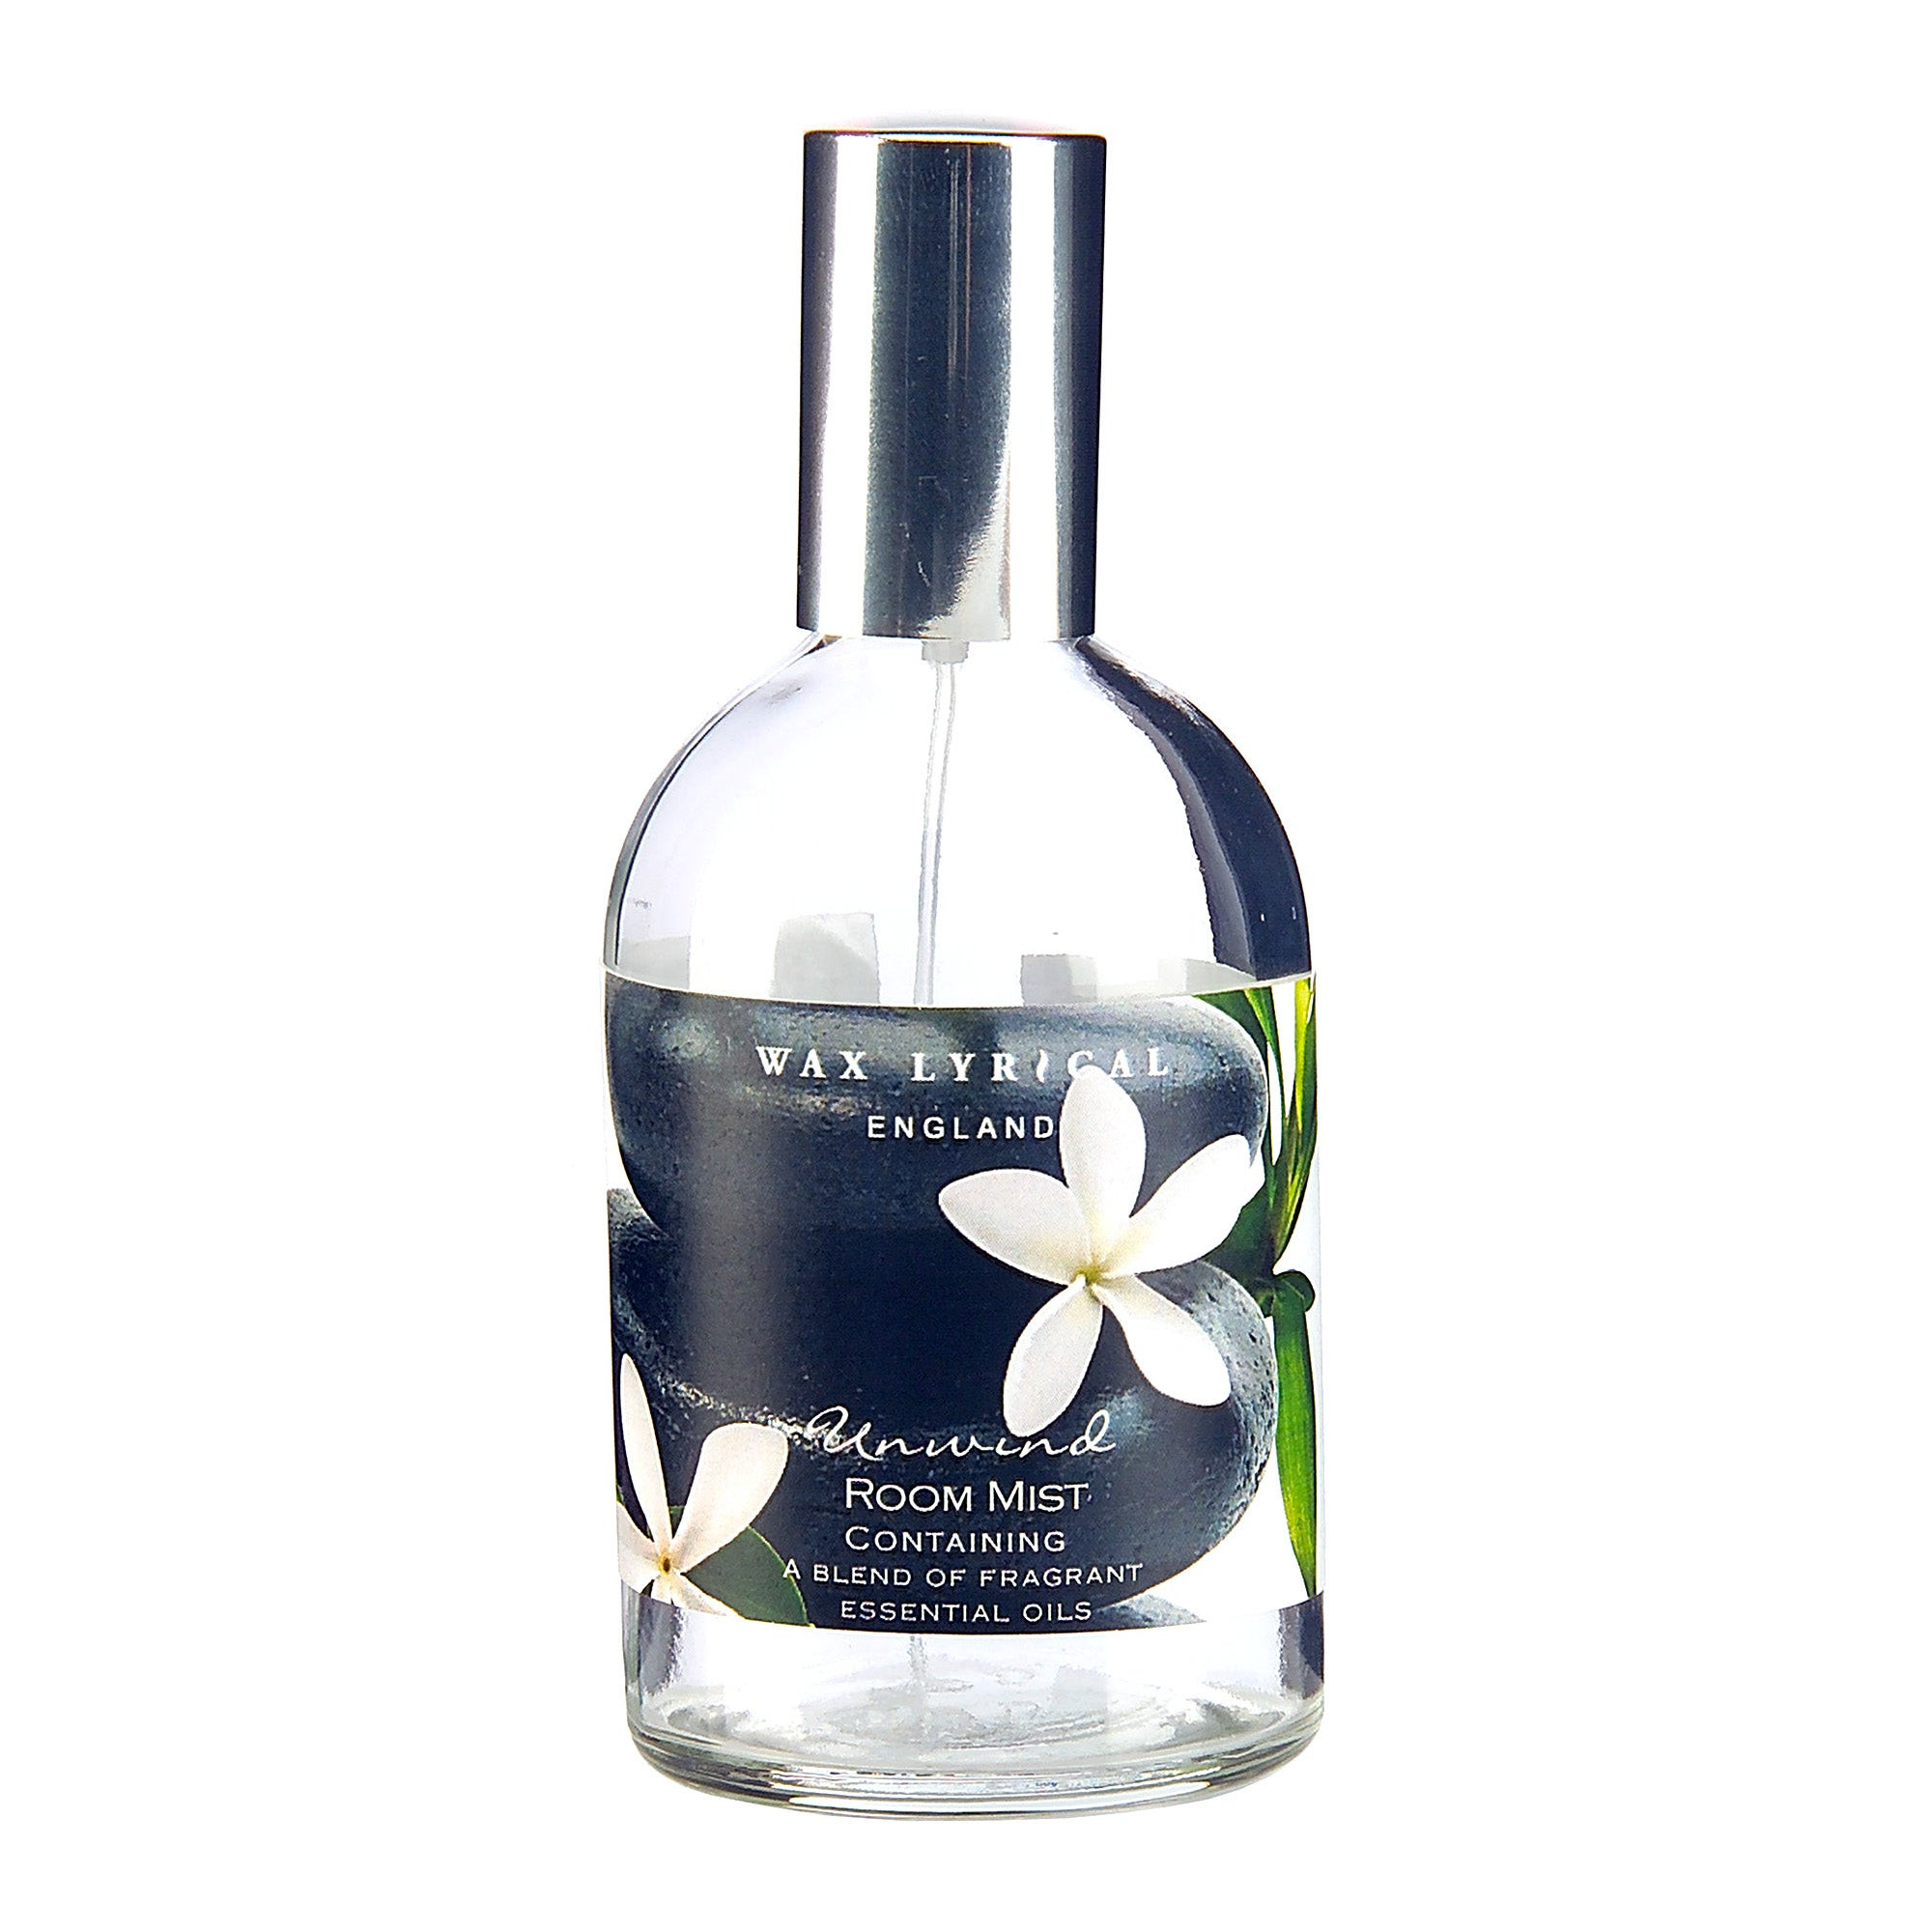 Wax Lyrical Unwind Room Mist